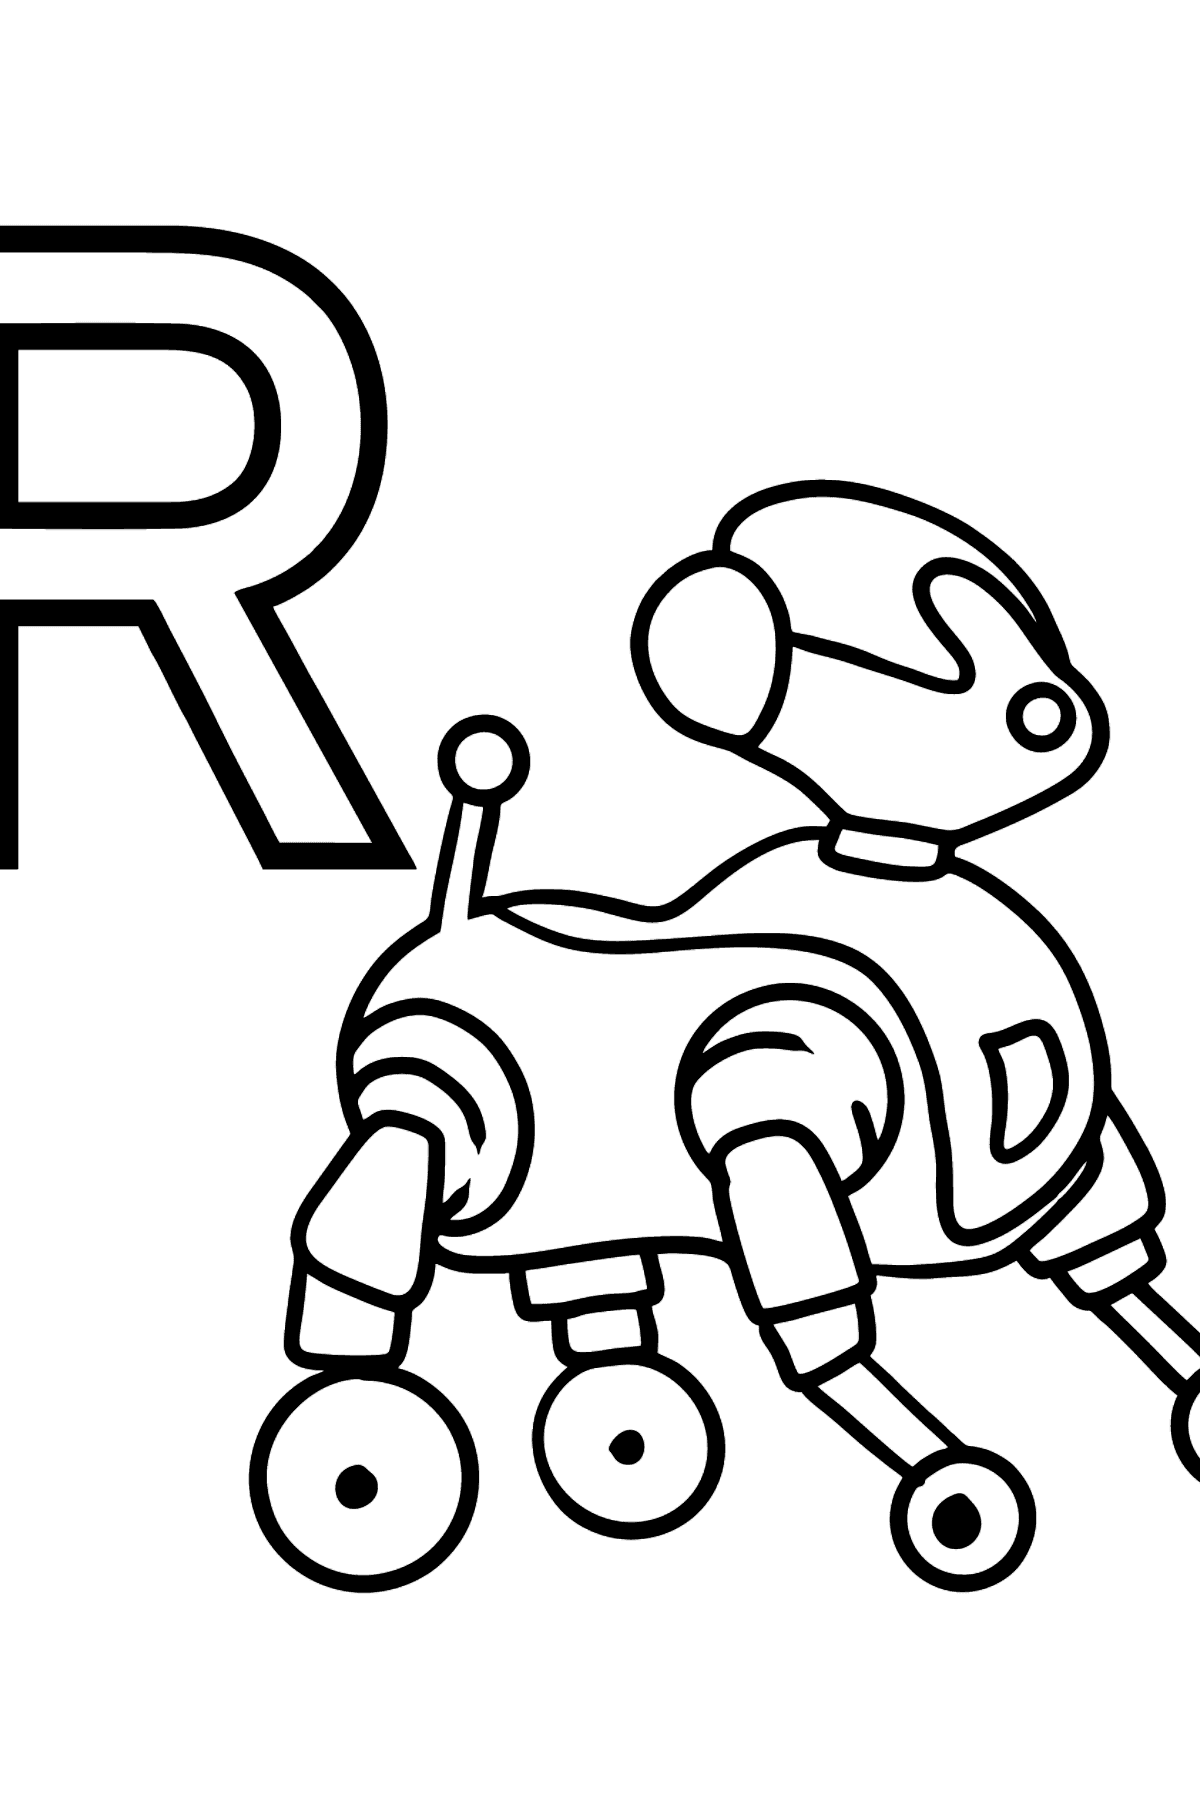 German Letter R coloring pages - ROBOTER - Coloring Pages for Kids